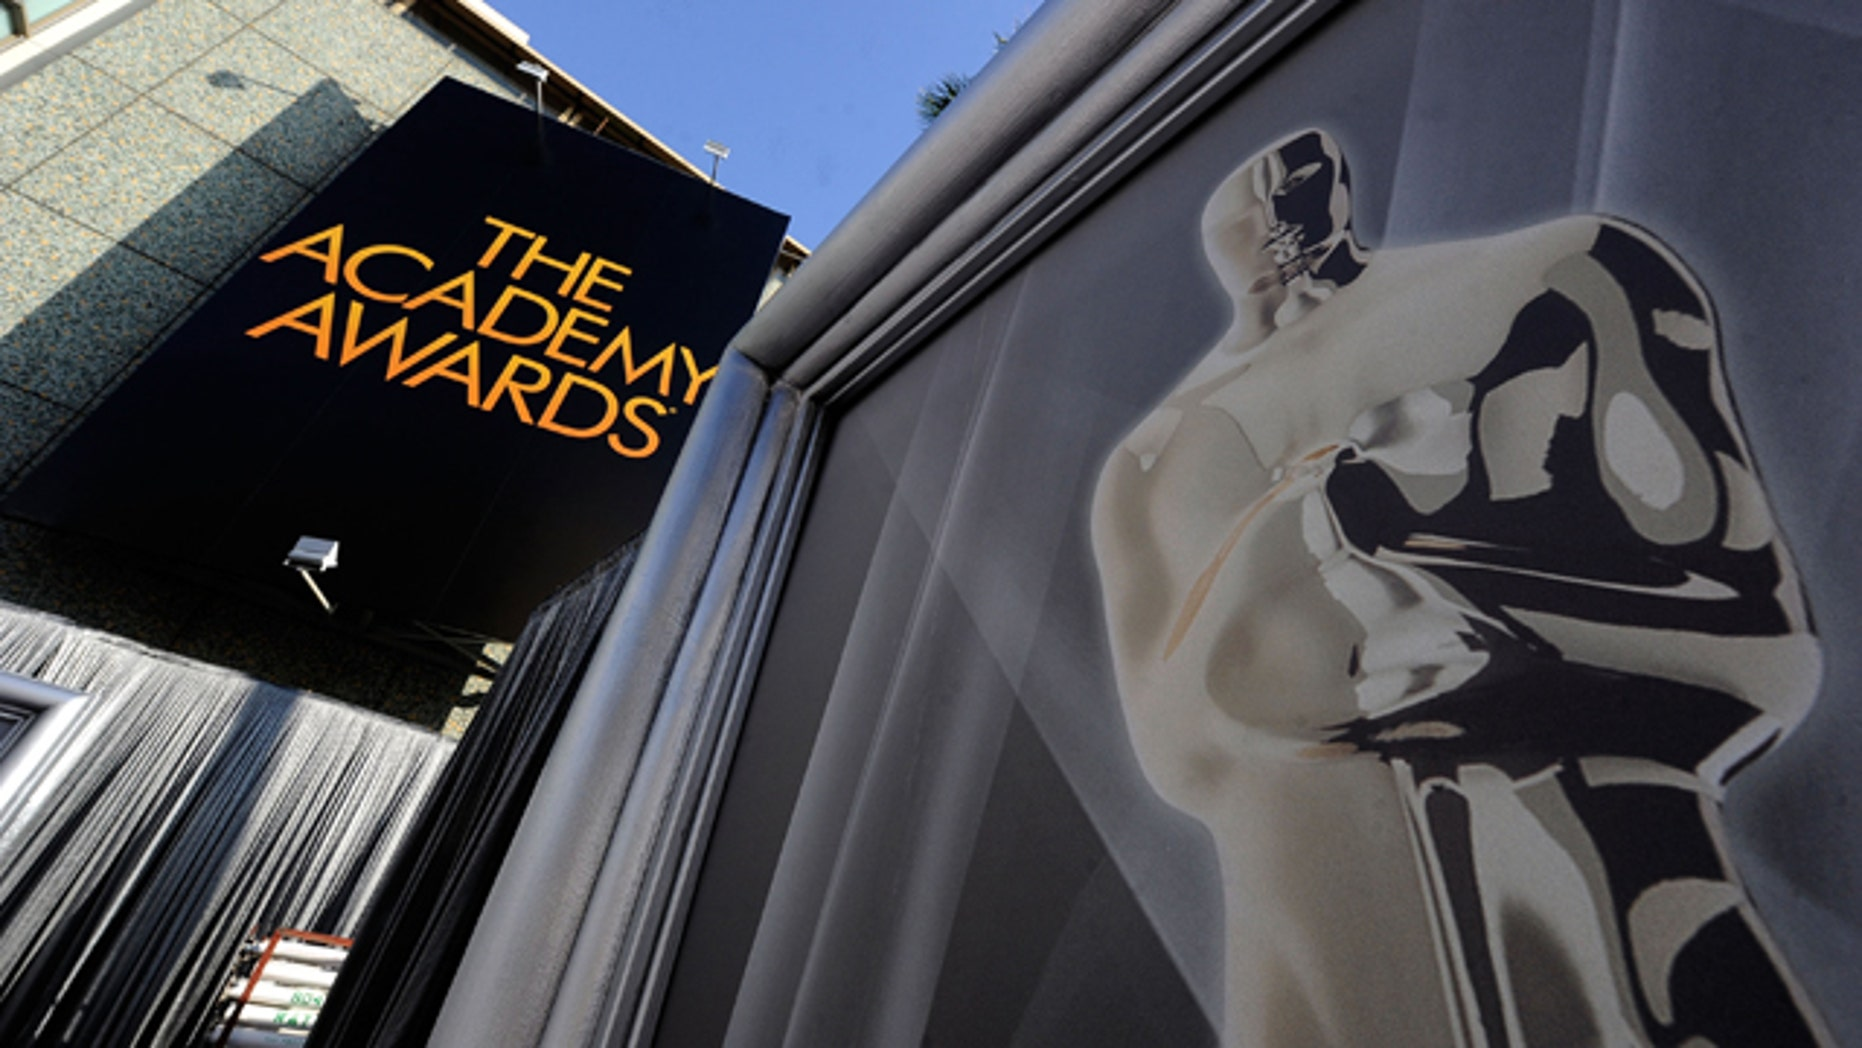 Feb. 24, 2012: Preparations continue for the 84th Annual Academy Awards at the Hollywood and Highland in Hollywood, Calif.